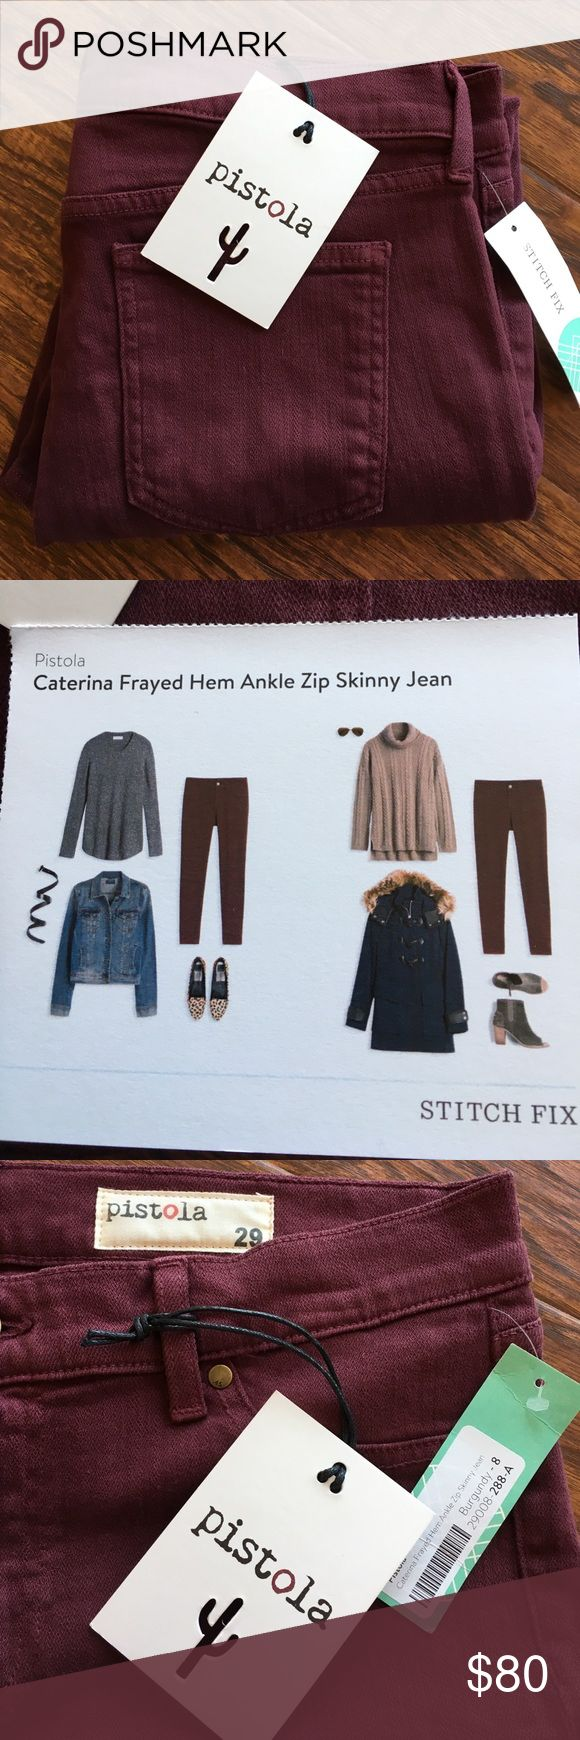 """Pistola Skinny Jean for Stitch Fix Caterina Frayed Hem Ankle Zip Skinny Jean. Burgundy. From Stitch Fix never worn new with tags. Inseam approx 26"""" with 9"""" rise. Super soft and has some stretch. Pistola Jeans Ankle & Cropped"""